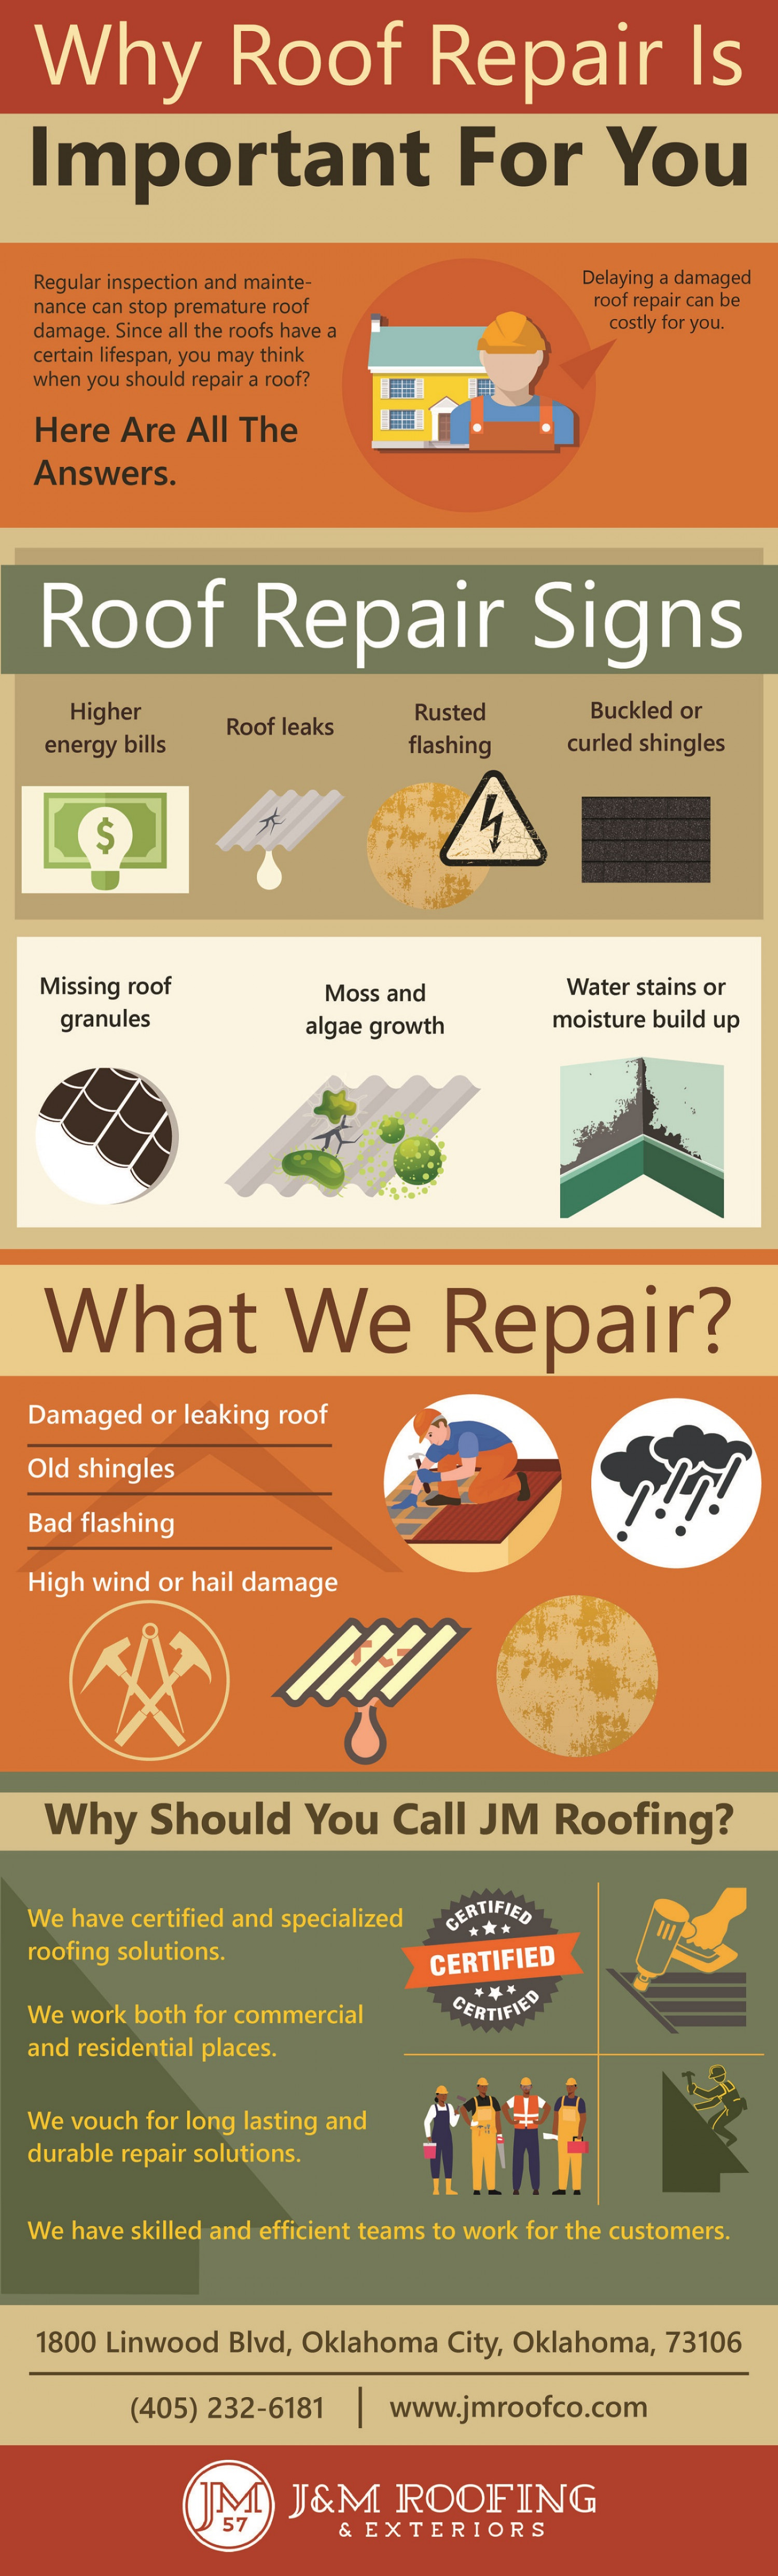 Why Roof Repair is Important for You? Infographic